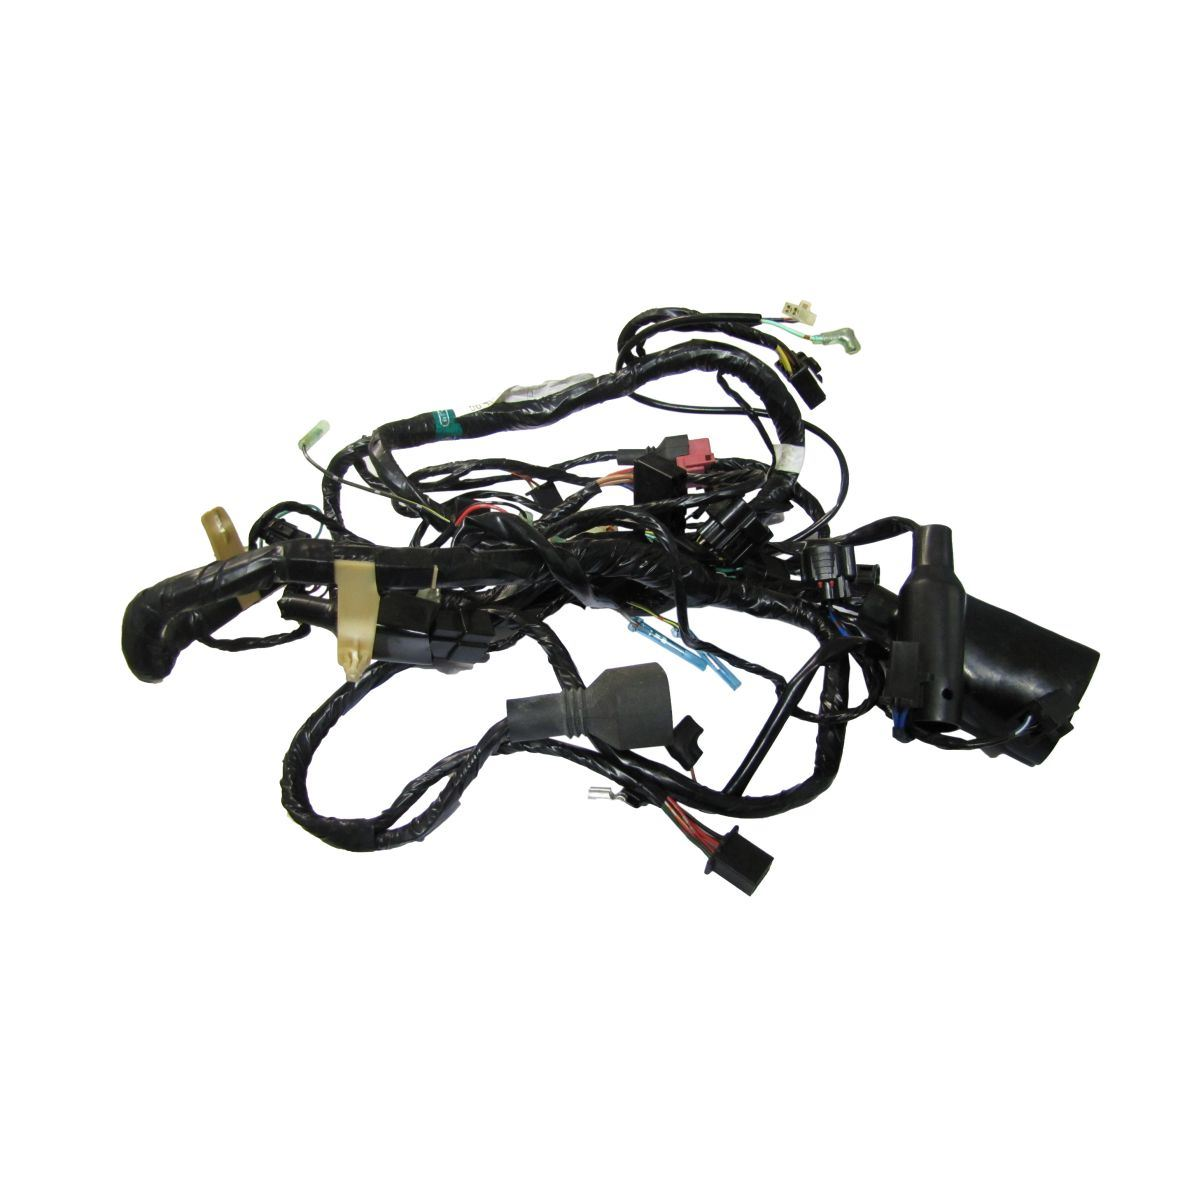 Aw Motorcycle Parts  Wiring Harness Zx6r